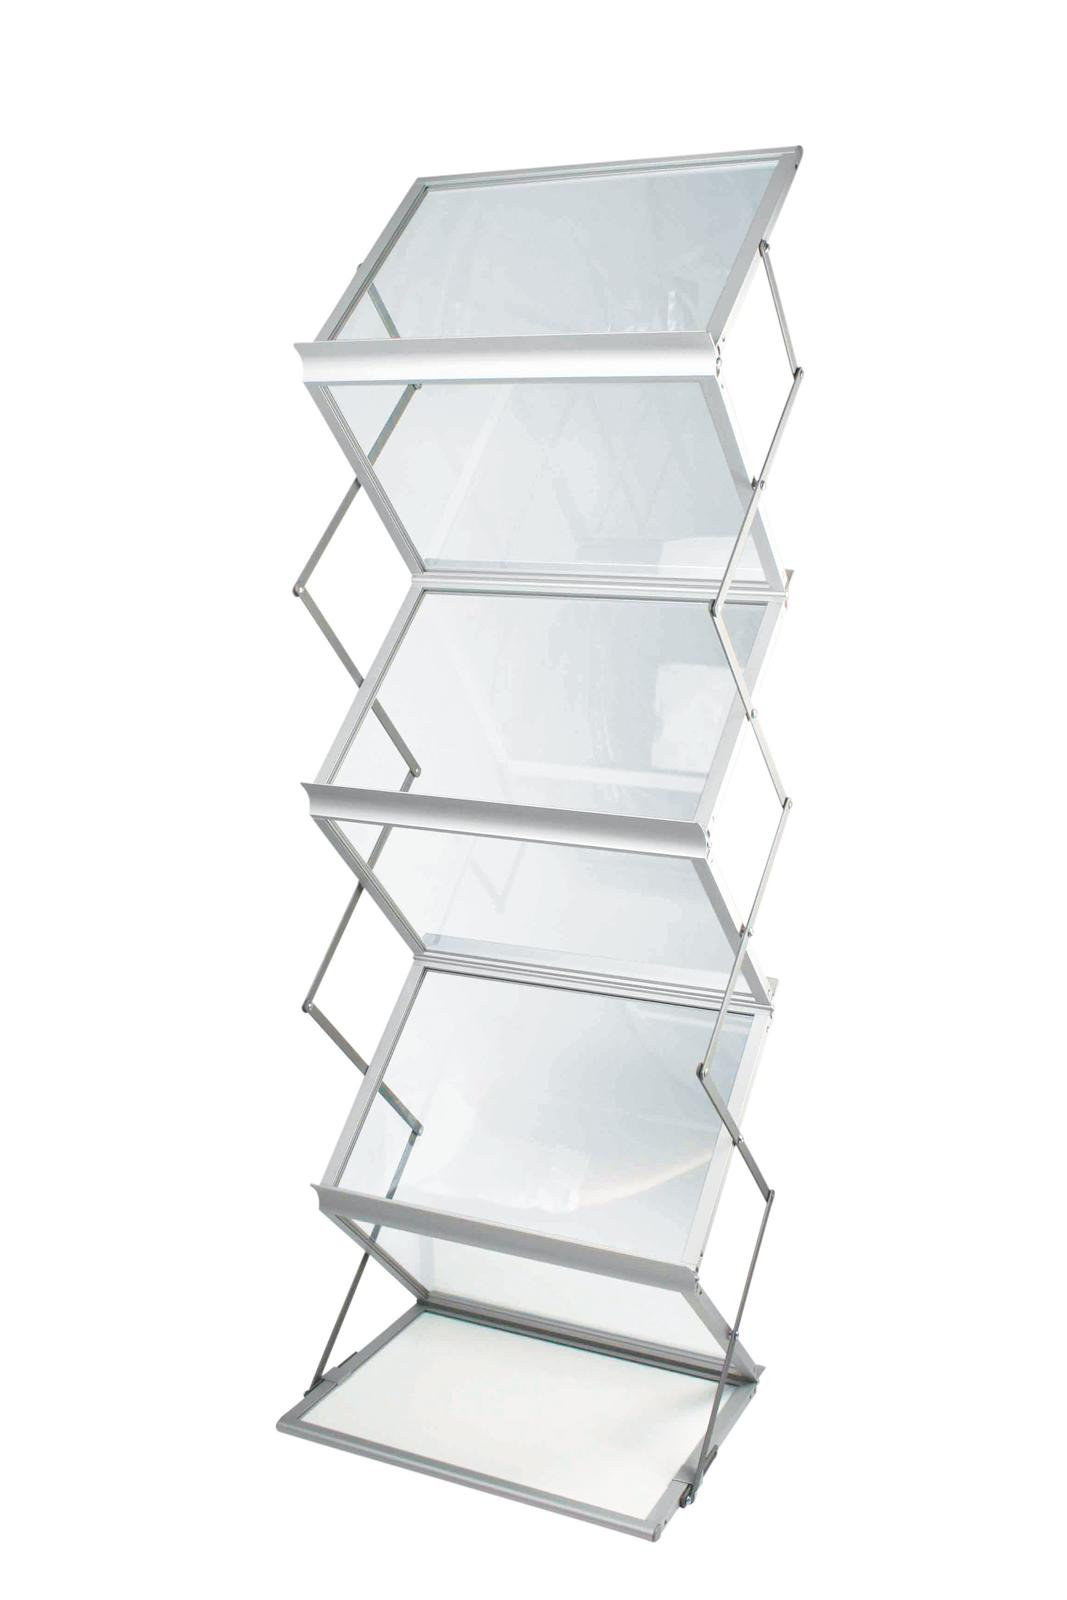 A3 Zed Up Lite Brochure Stand £92.50